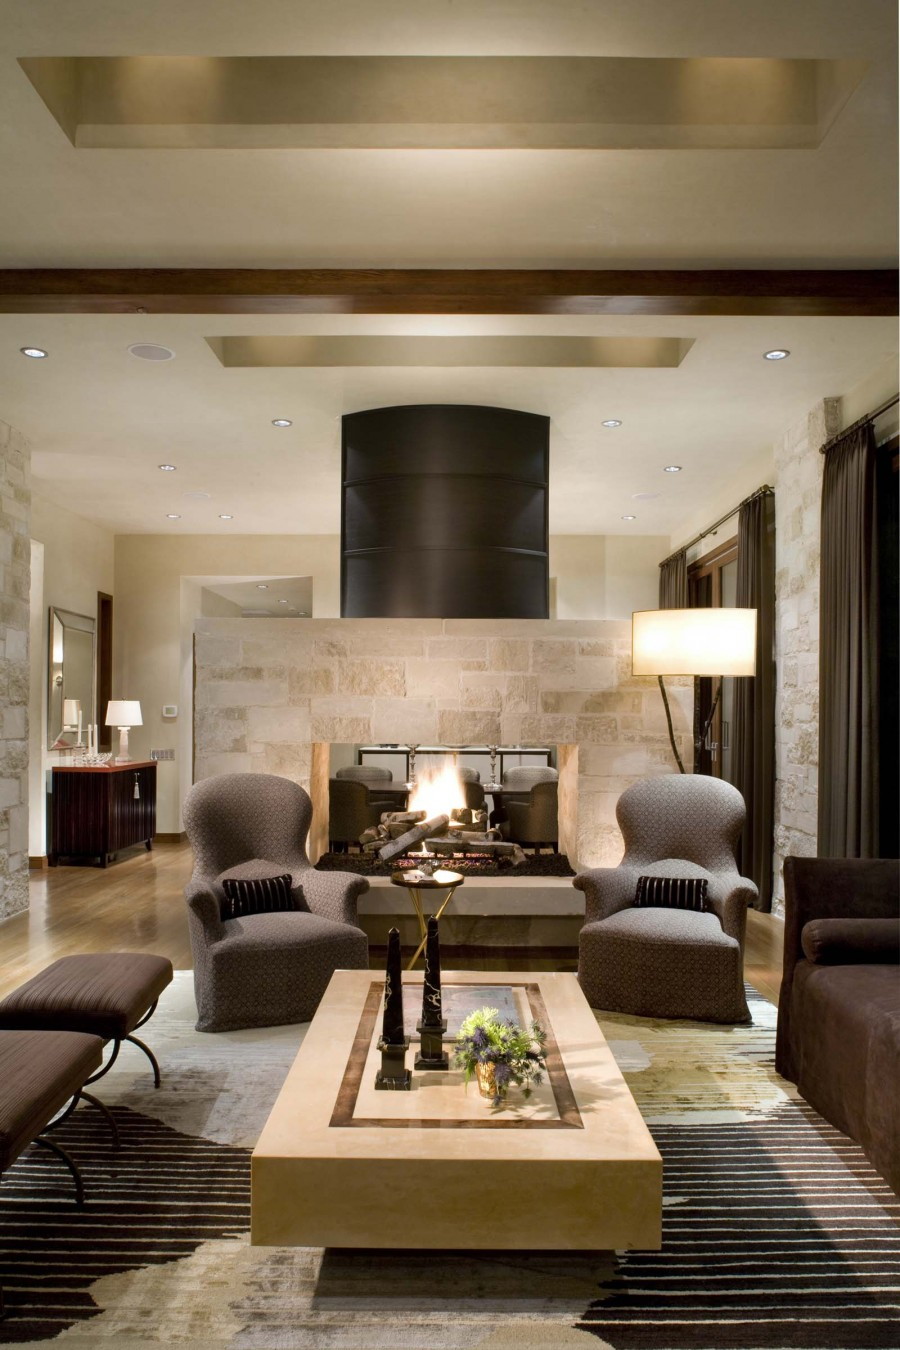 16 fabulous earth tones living room designs decoholic for Modern contemporary interior design